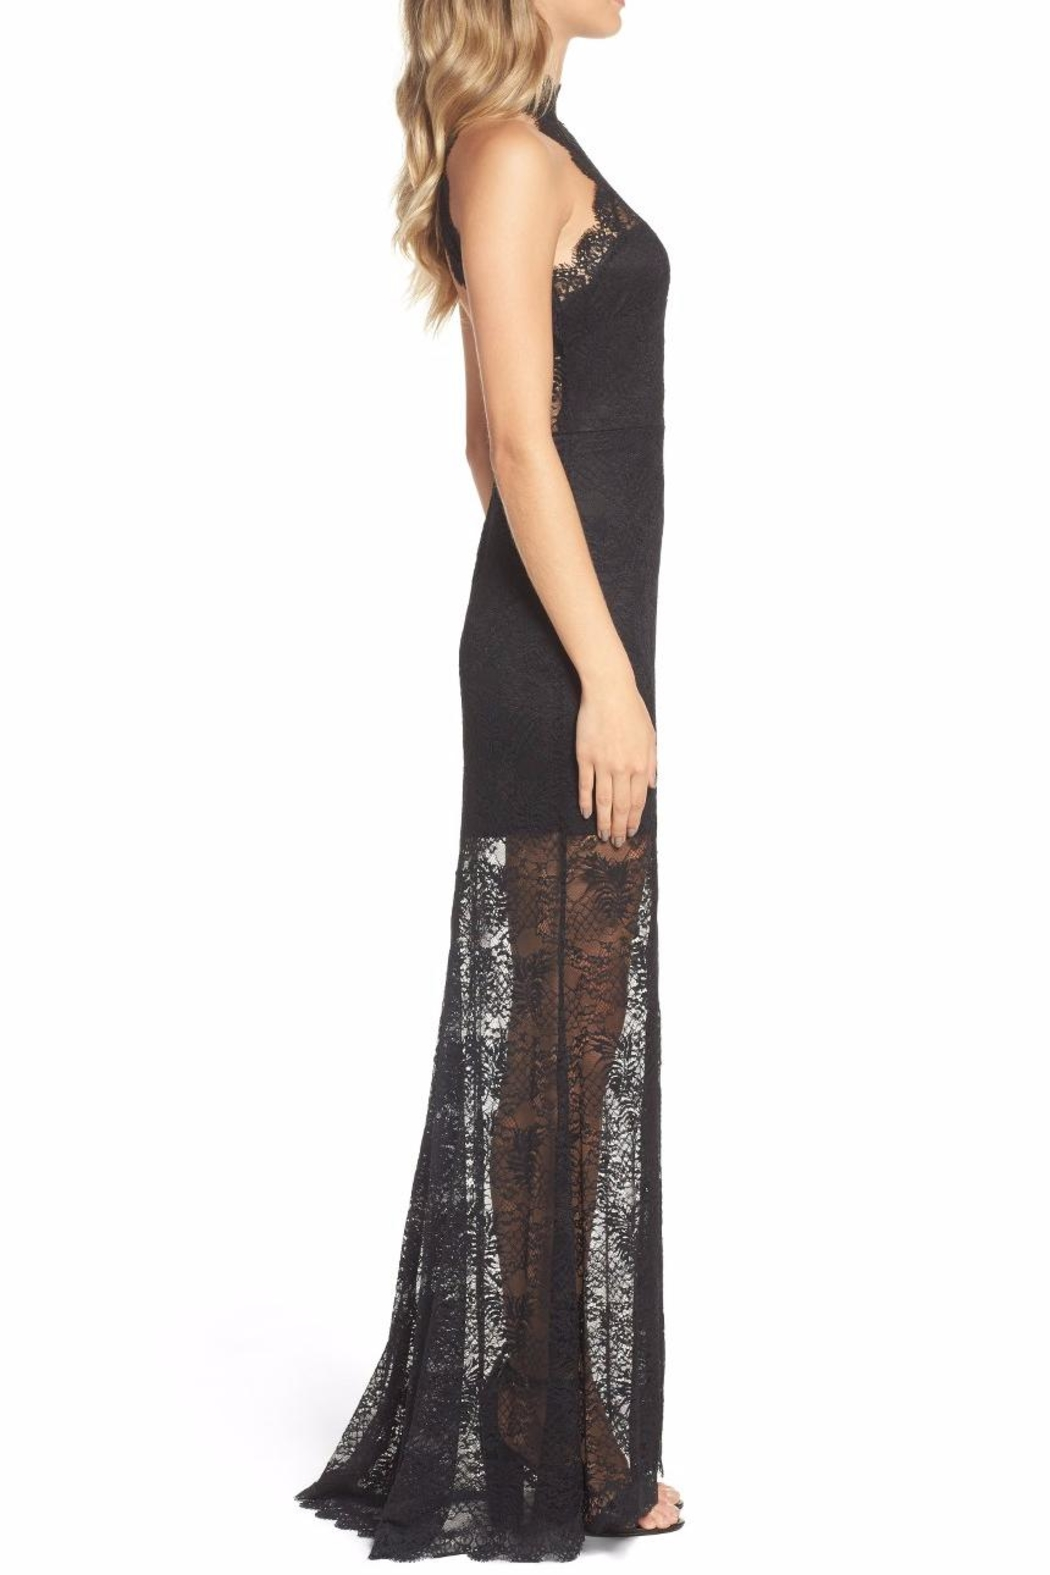 Ali & Jay Black Lace Gown - Side Cropped Image